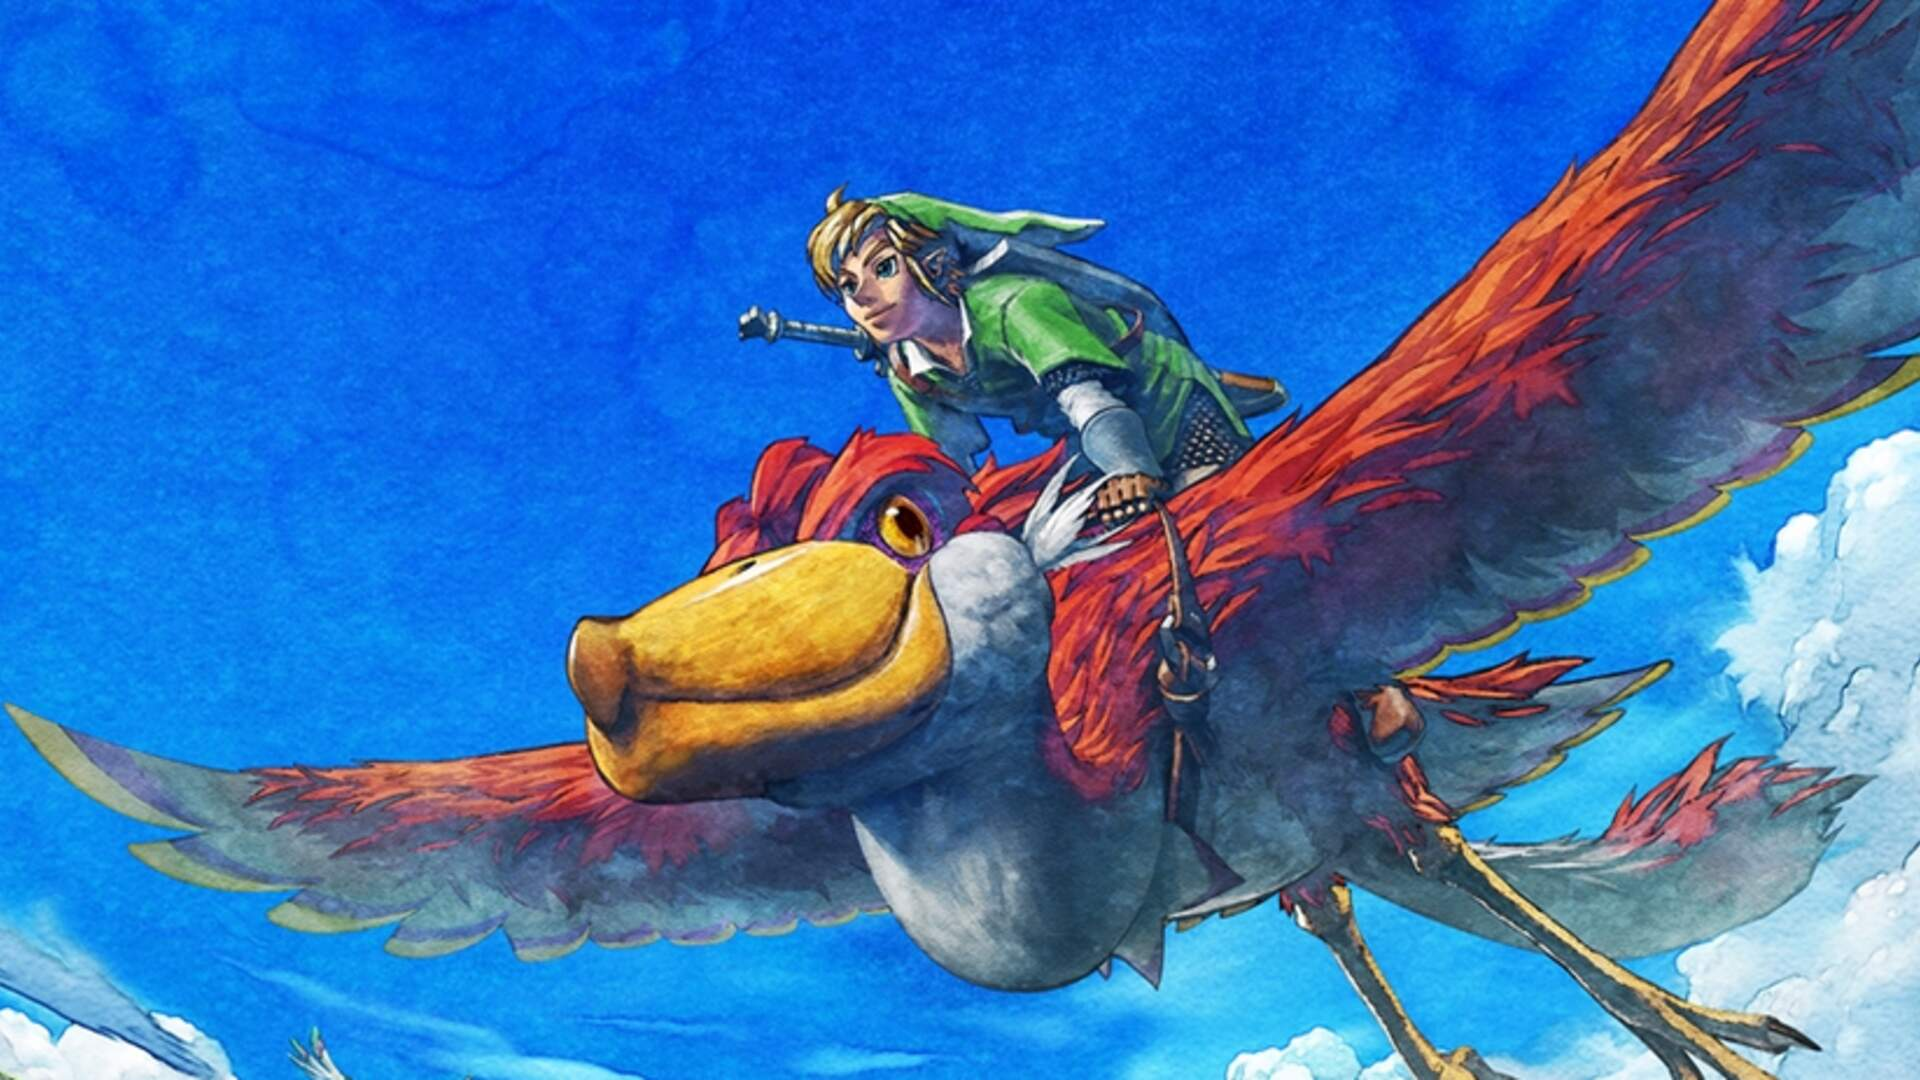 Nintendo Denies Rumors Zelda: Skyward Sword is Coming to the Switch